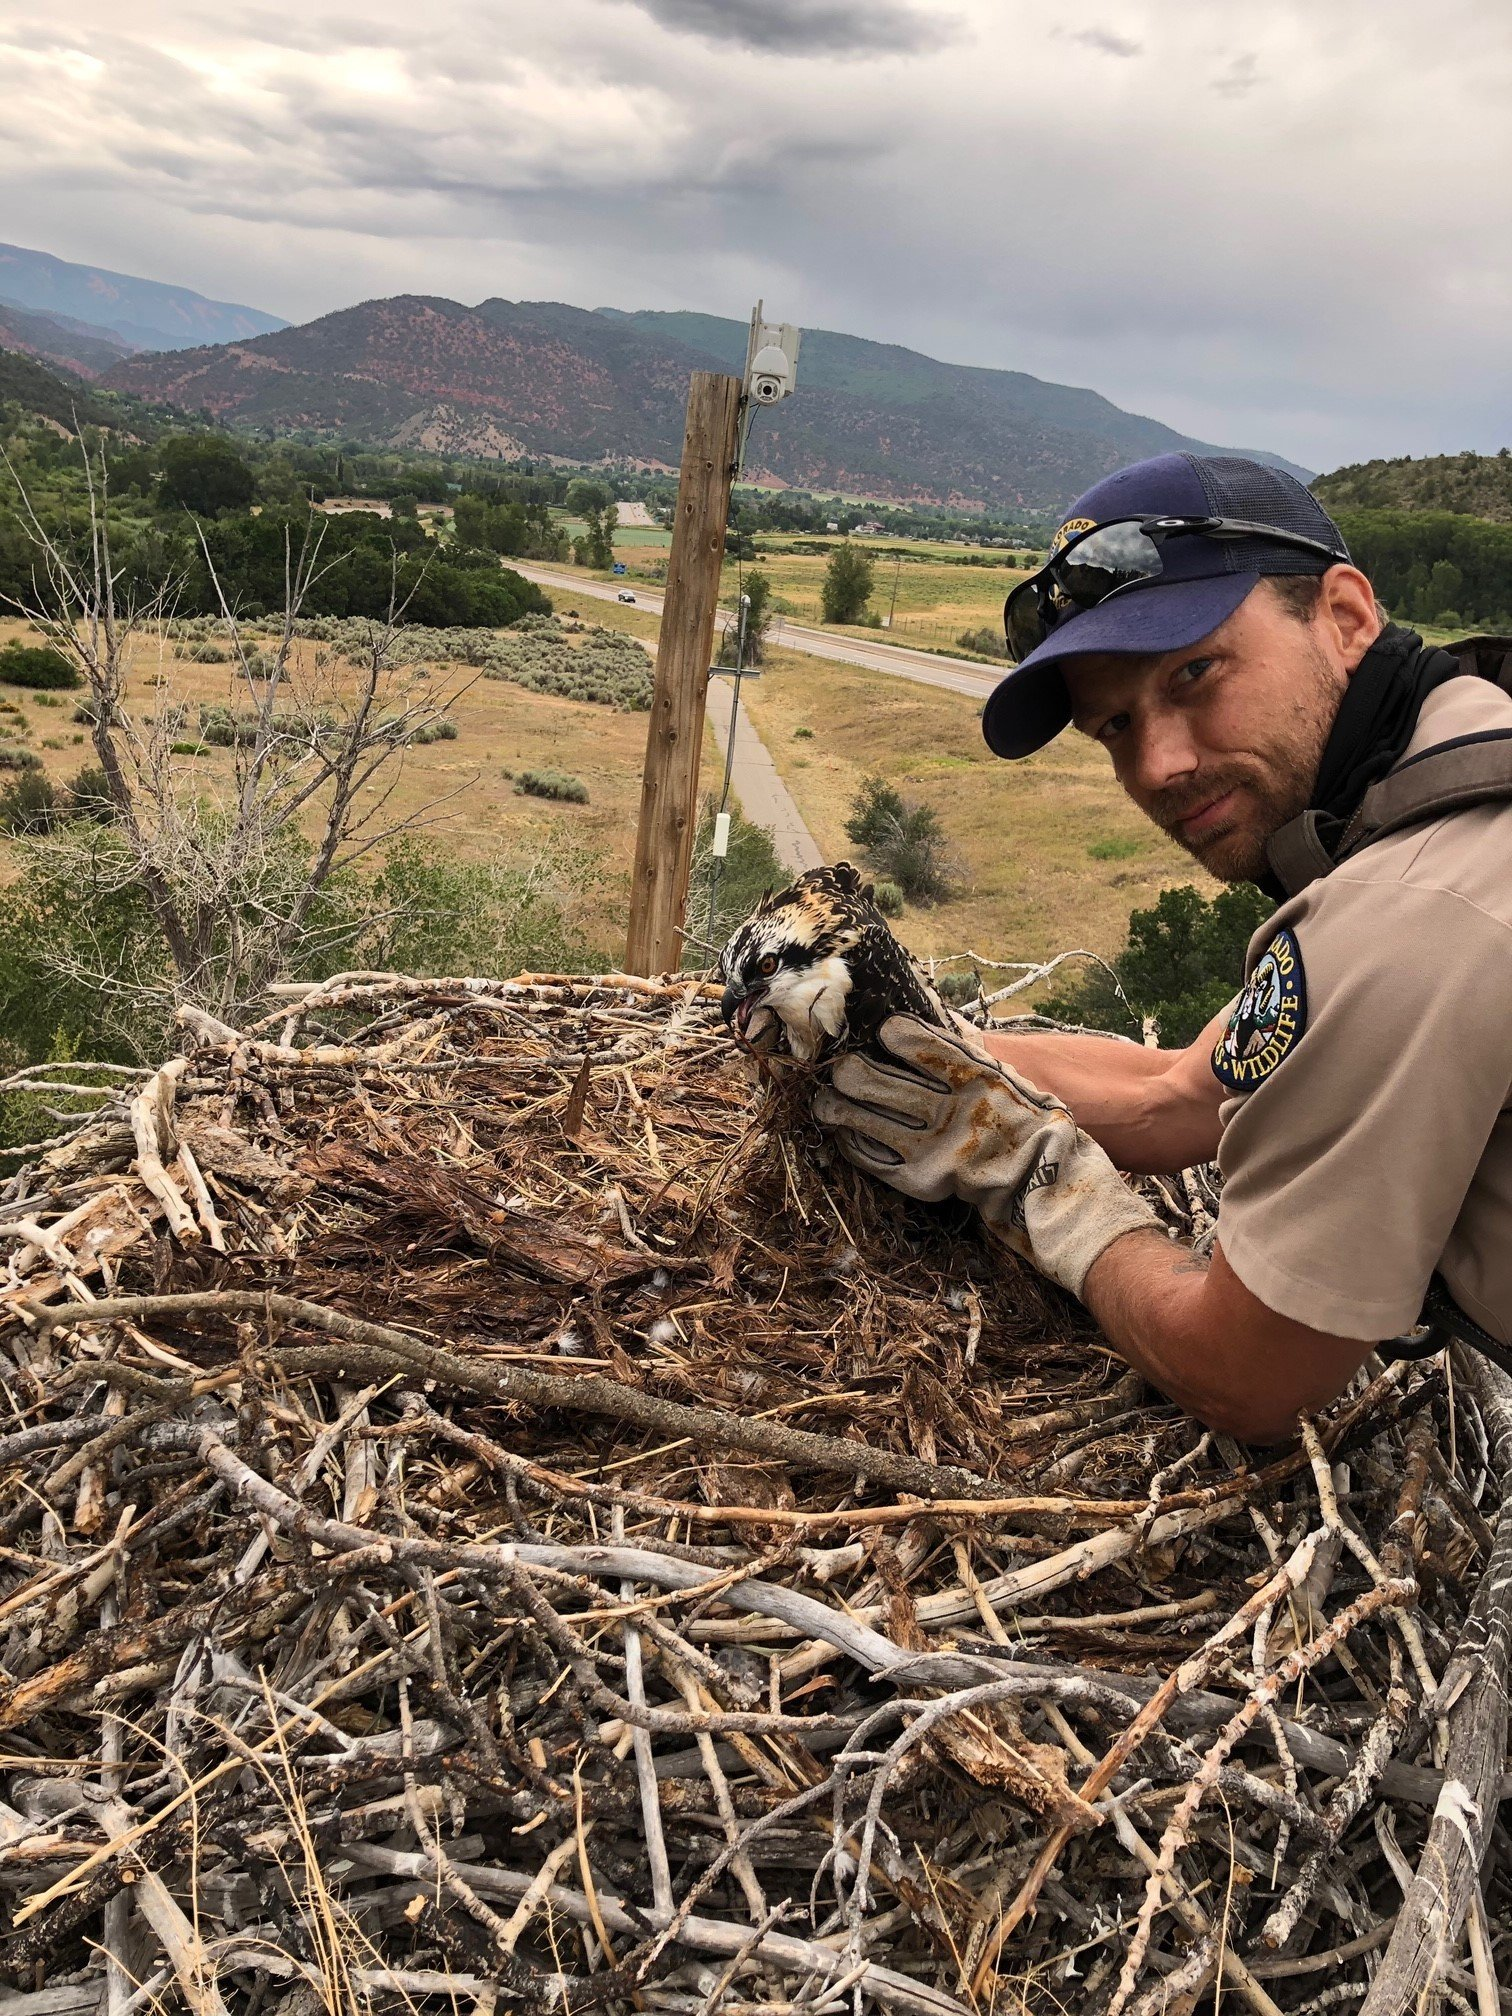 DWM Kurtis Tesch helps an osprey tangled in some fishing line. Courtesy image.